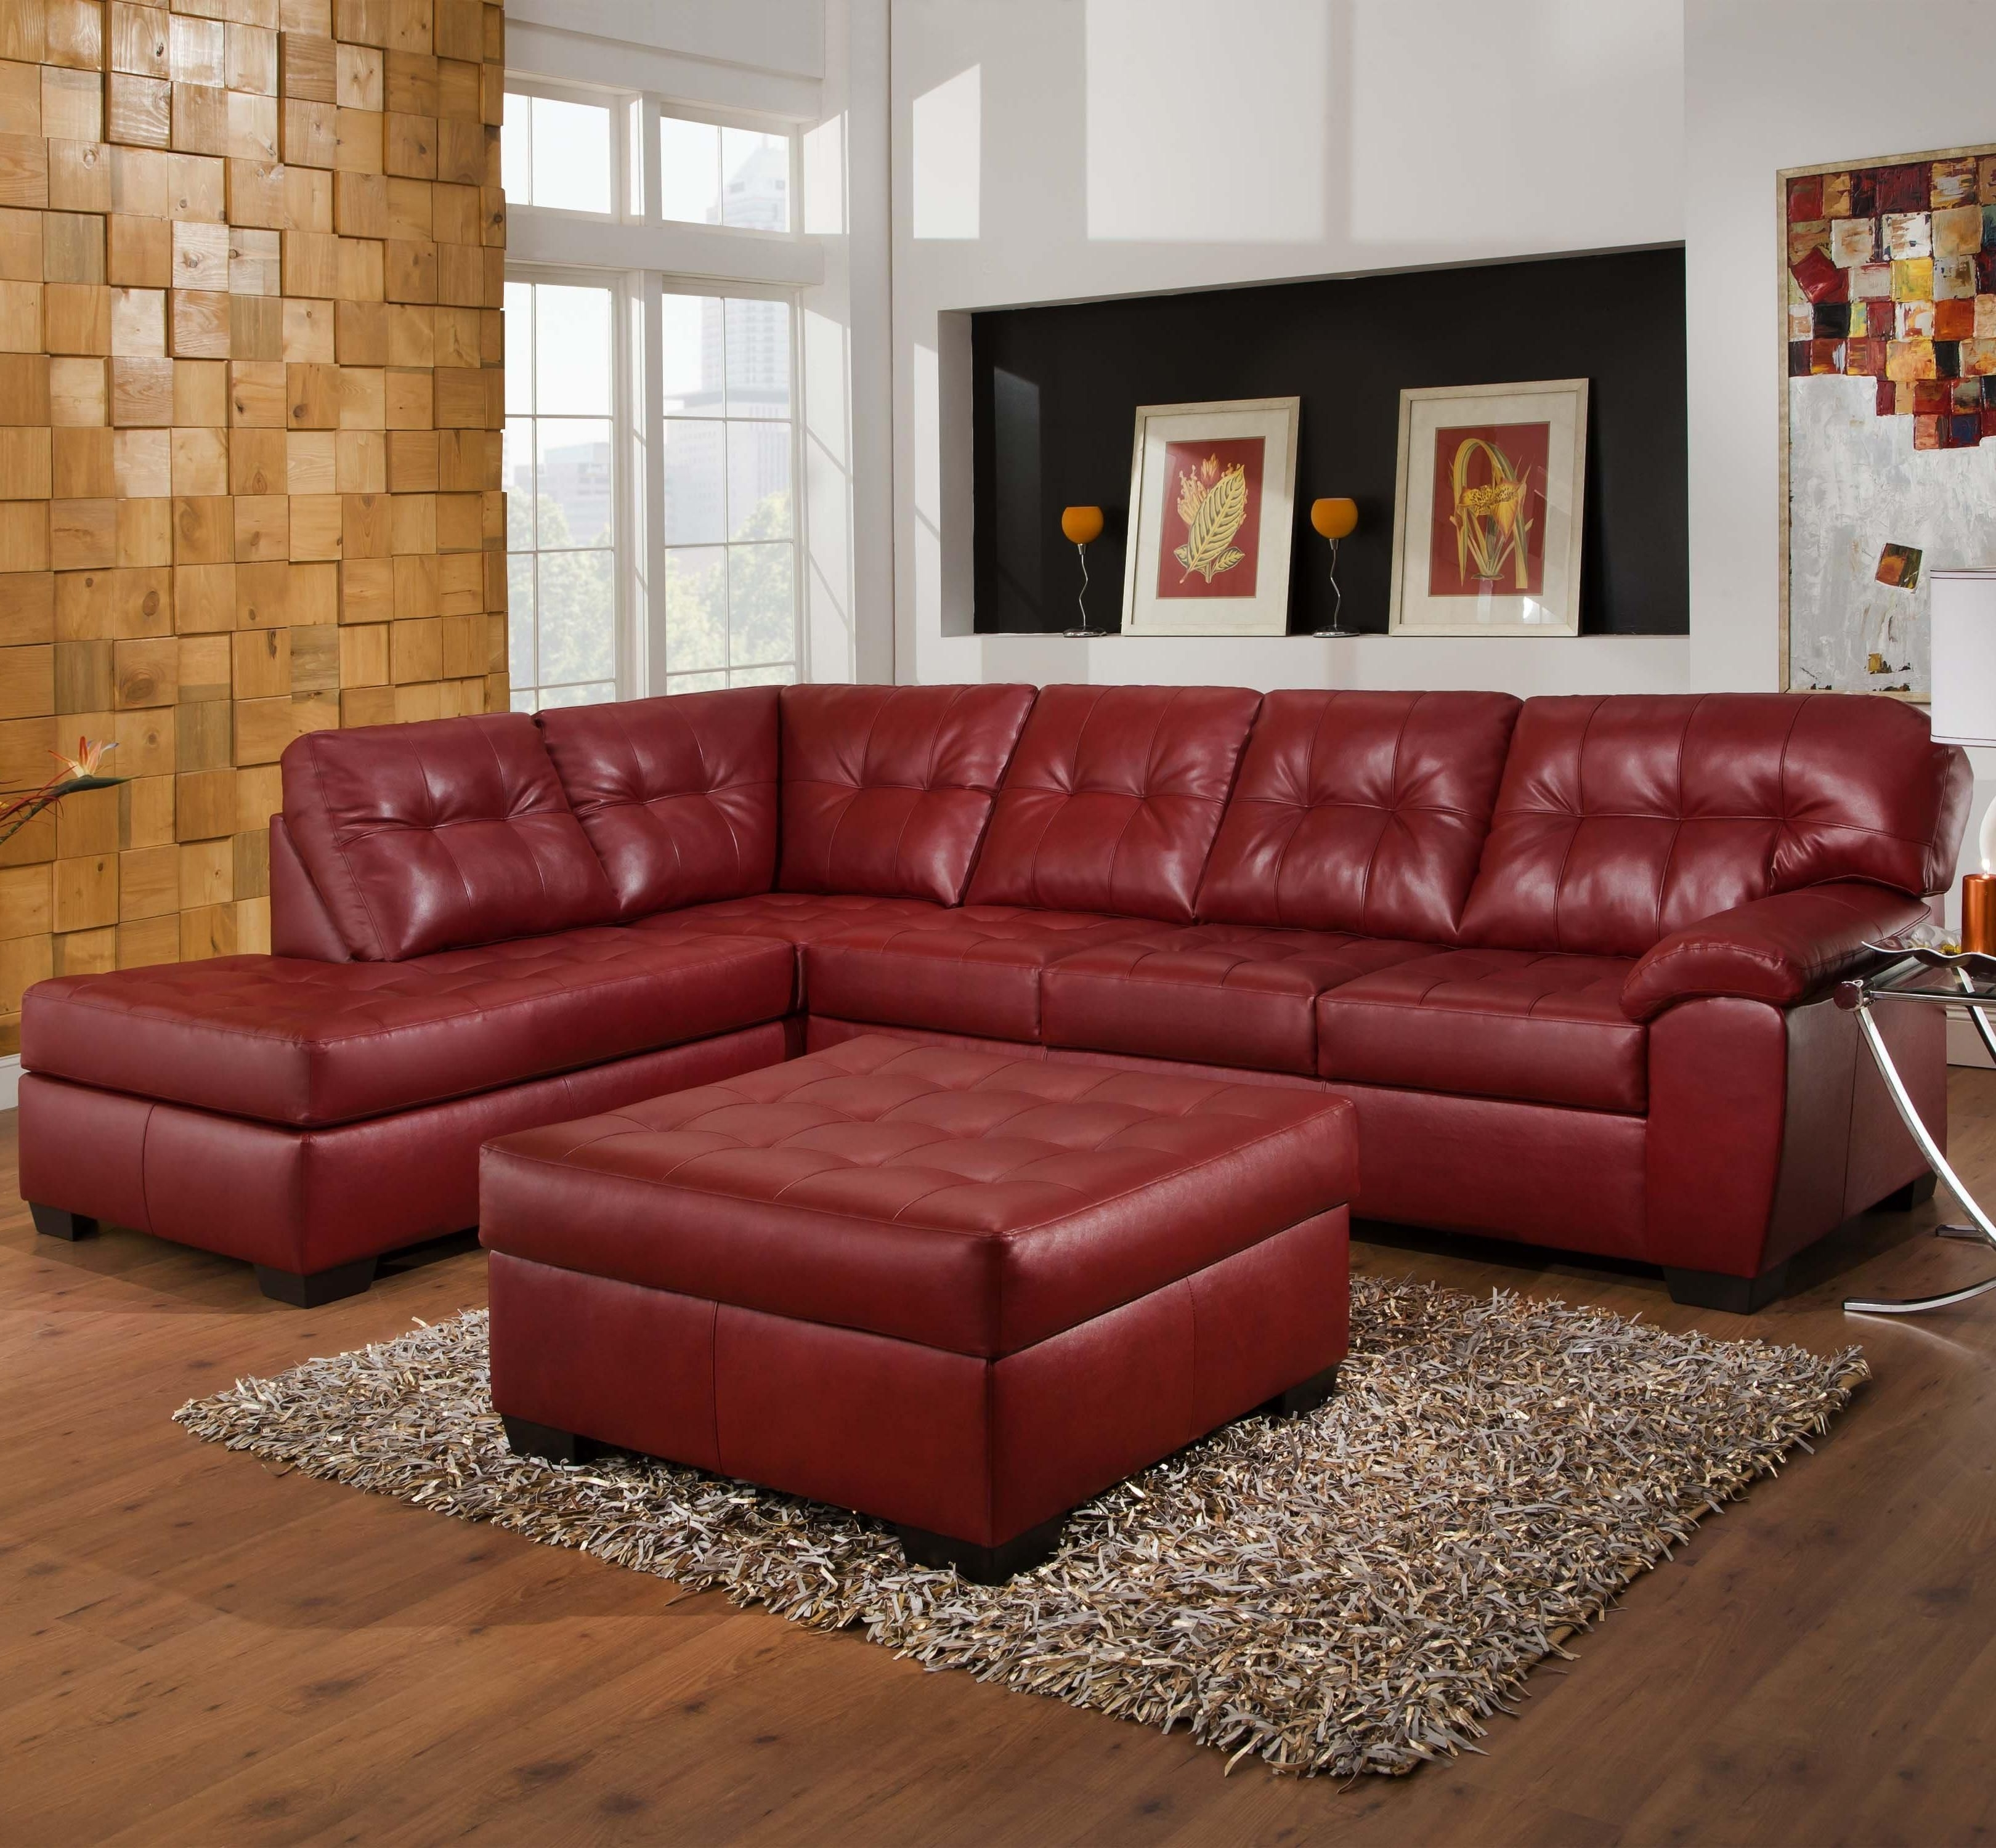 Newest 9569 2 Piece Sectional With Tufted Seats & Backsimmons Within Grand Rapids Mi Sectional Sofas (View 14 of 20)